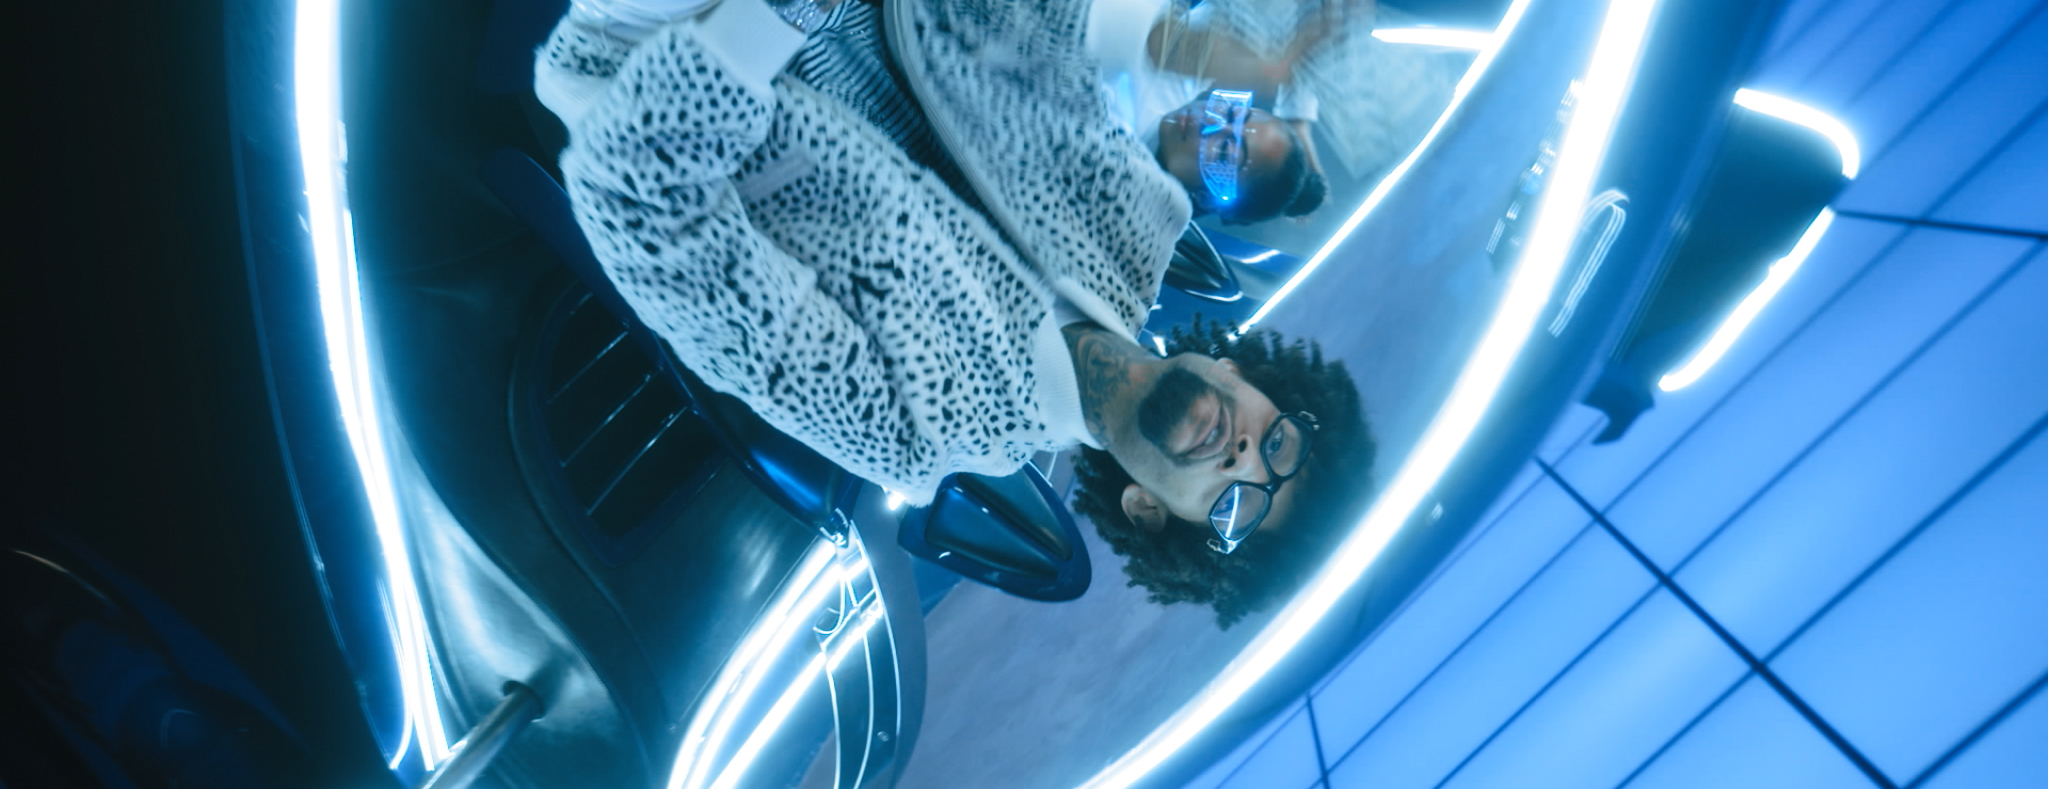 PNB ROCK FT. TEE GRIZZLEY - GO TO MARS (OFFICIAL VIDEO) - DIRECTED BY MAJIK FILMS.mov.00_02_09_05.Still149.jpg